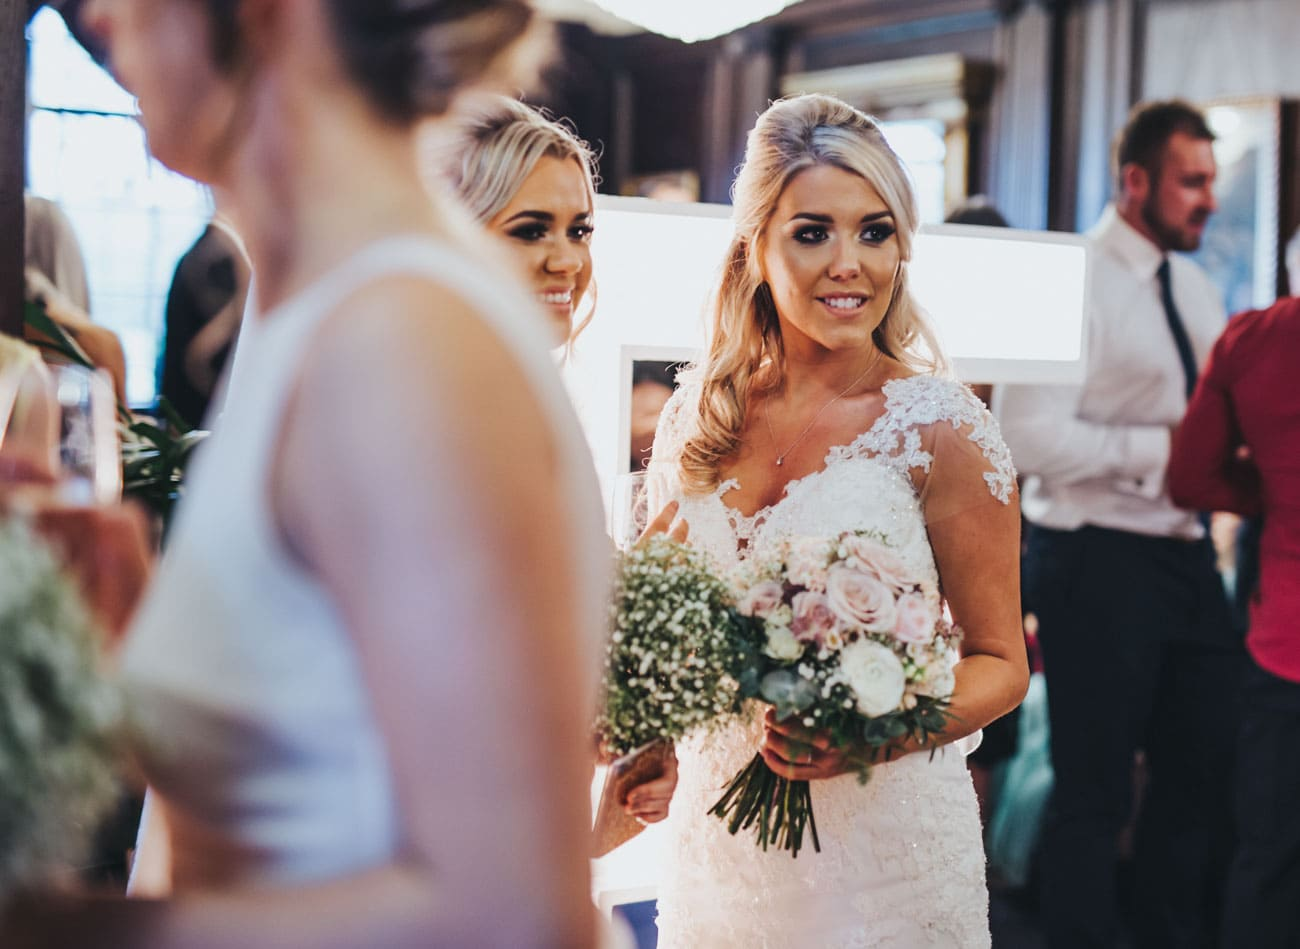 bride and guests - natural wedding photography Lancashire